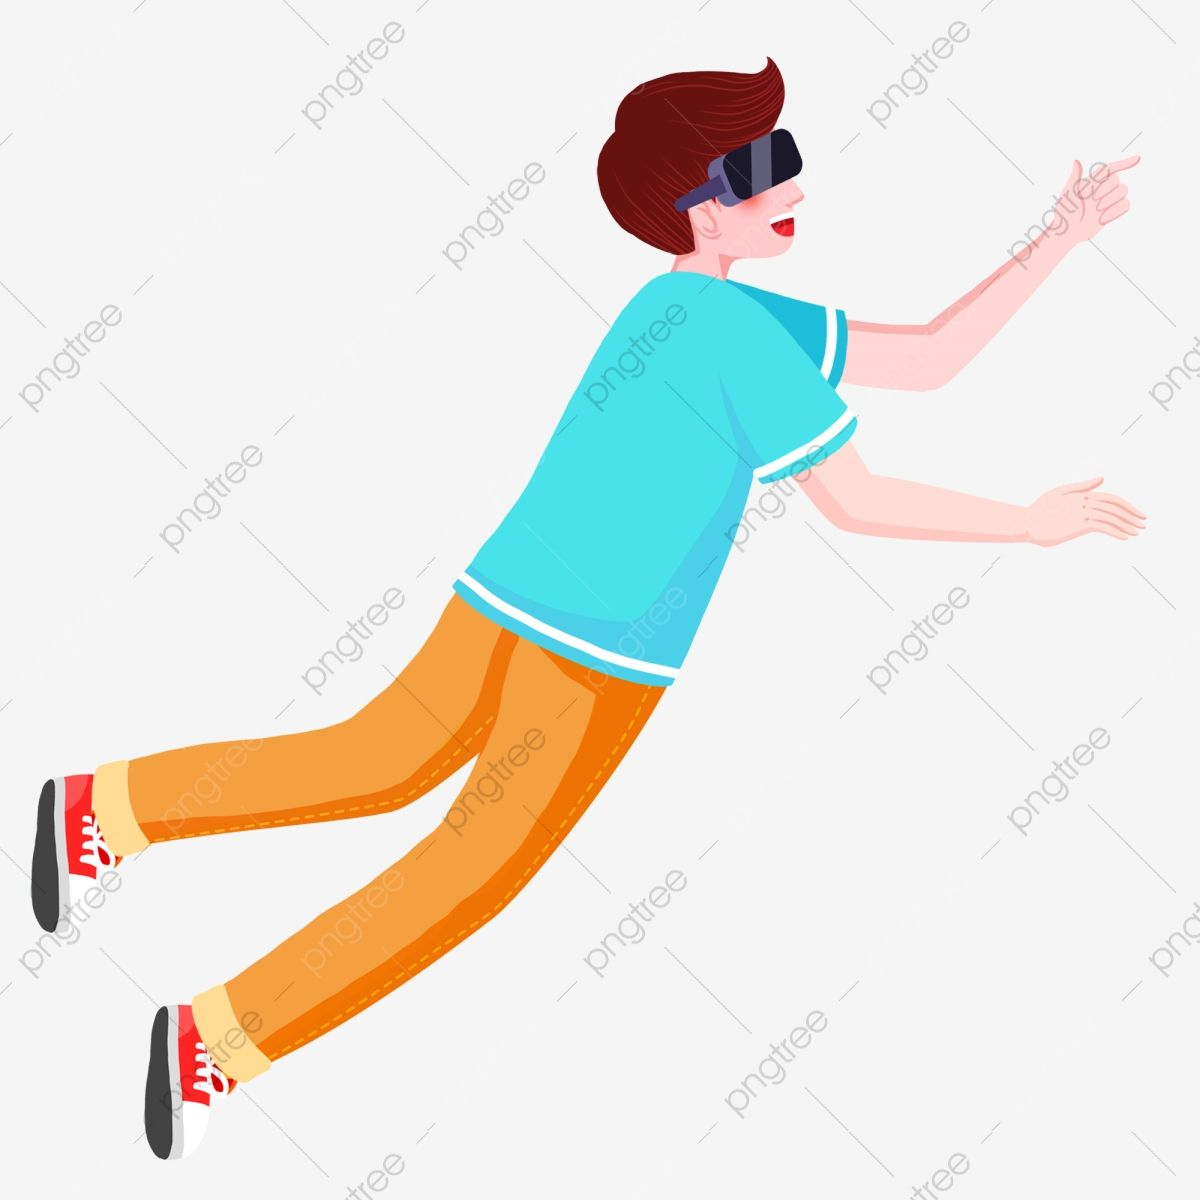 Floating Person Illustration Person Cartoon Funny Illustration Person Drawing